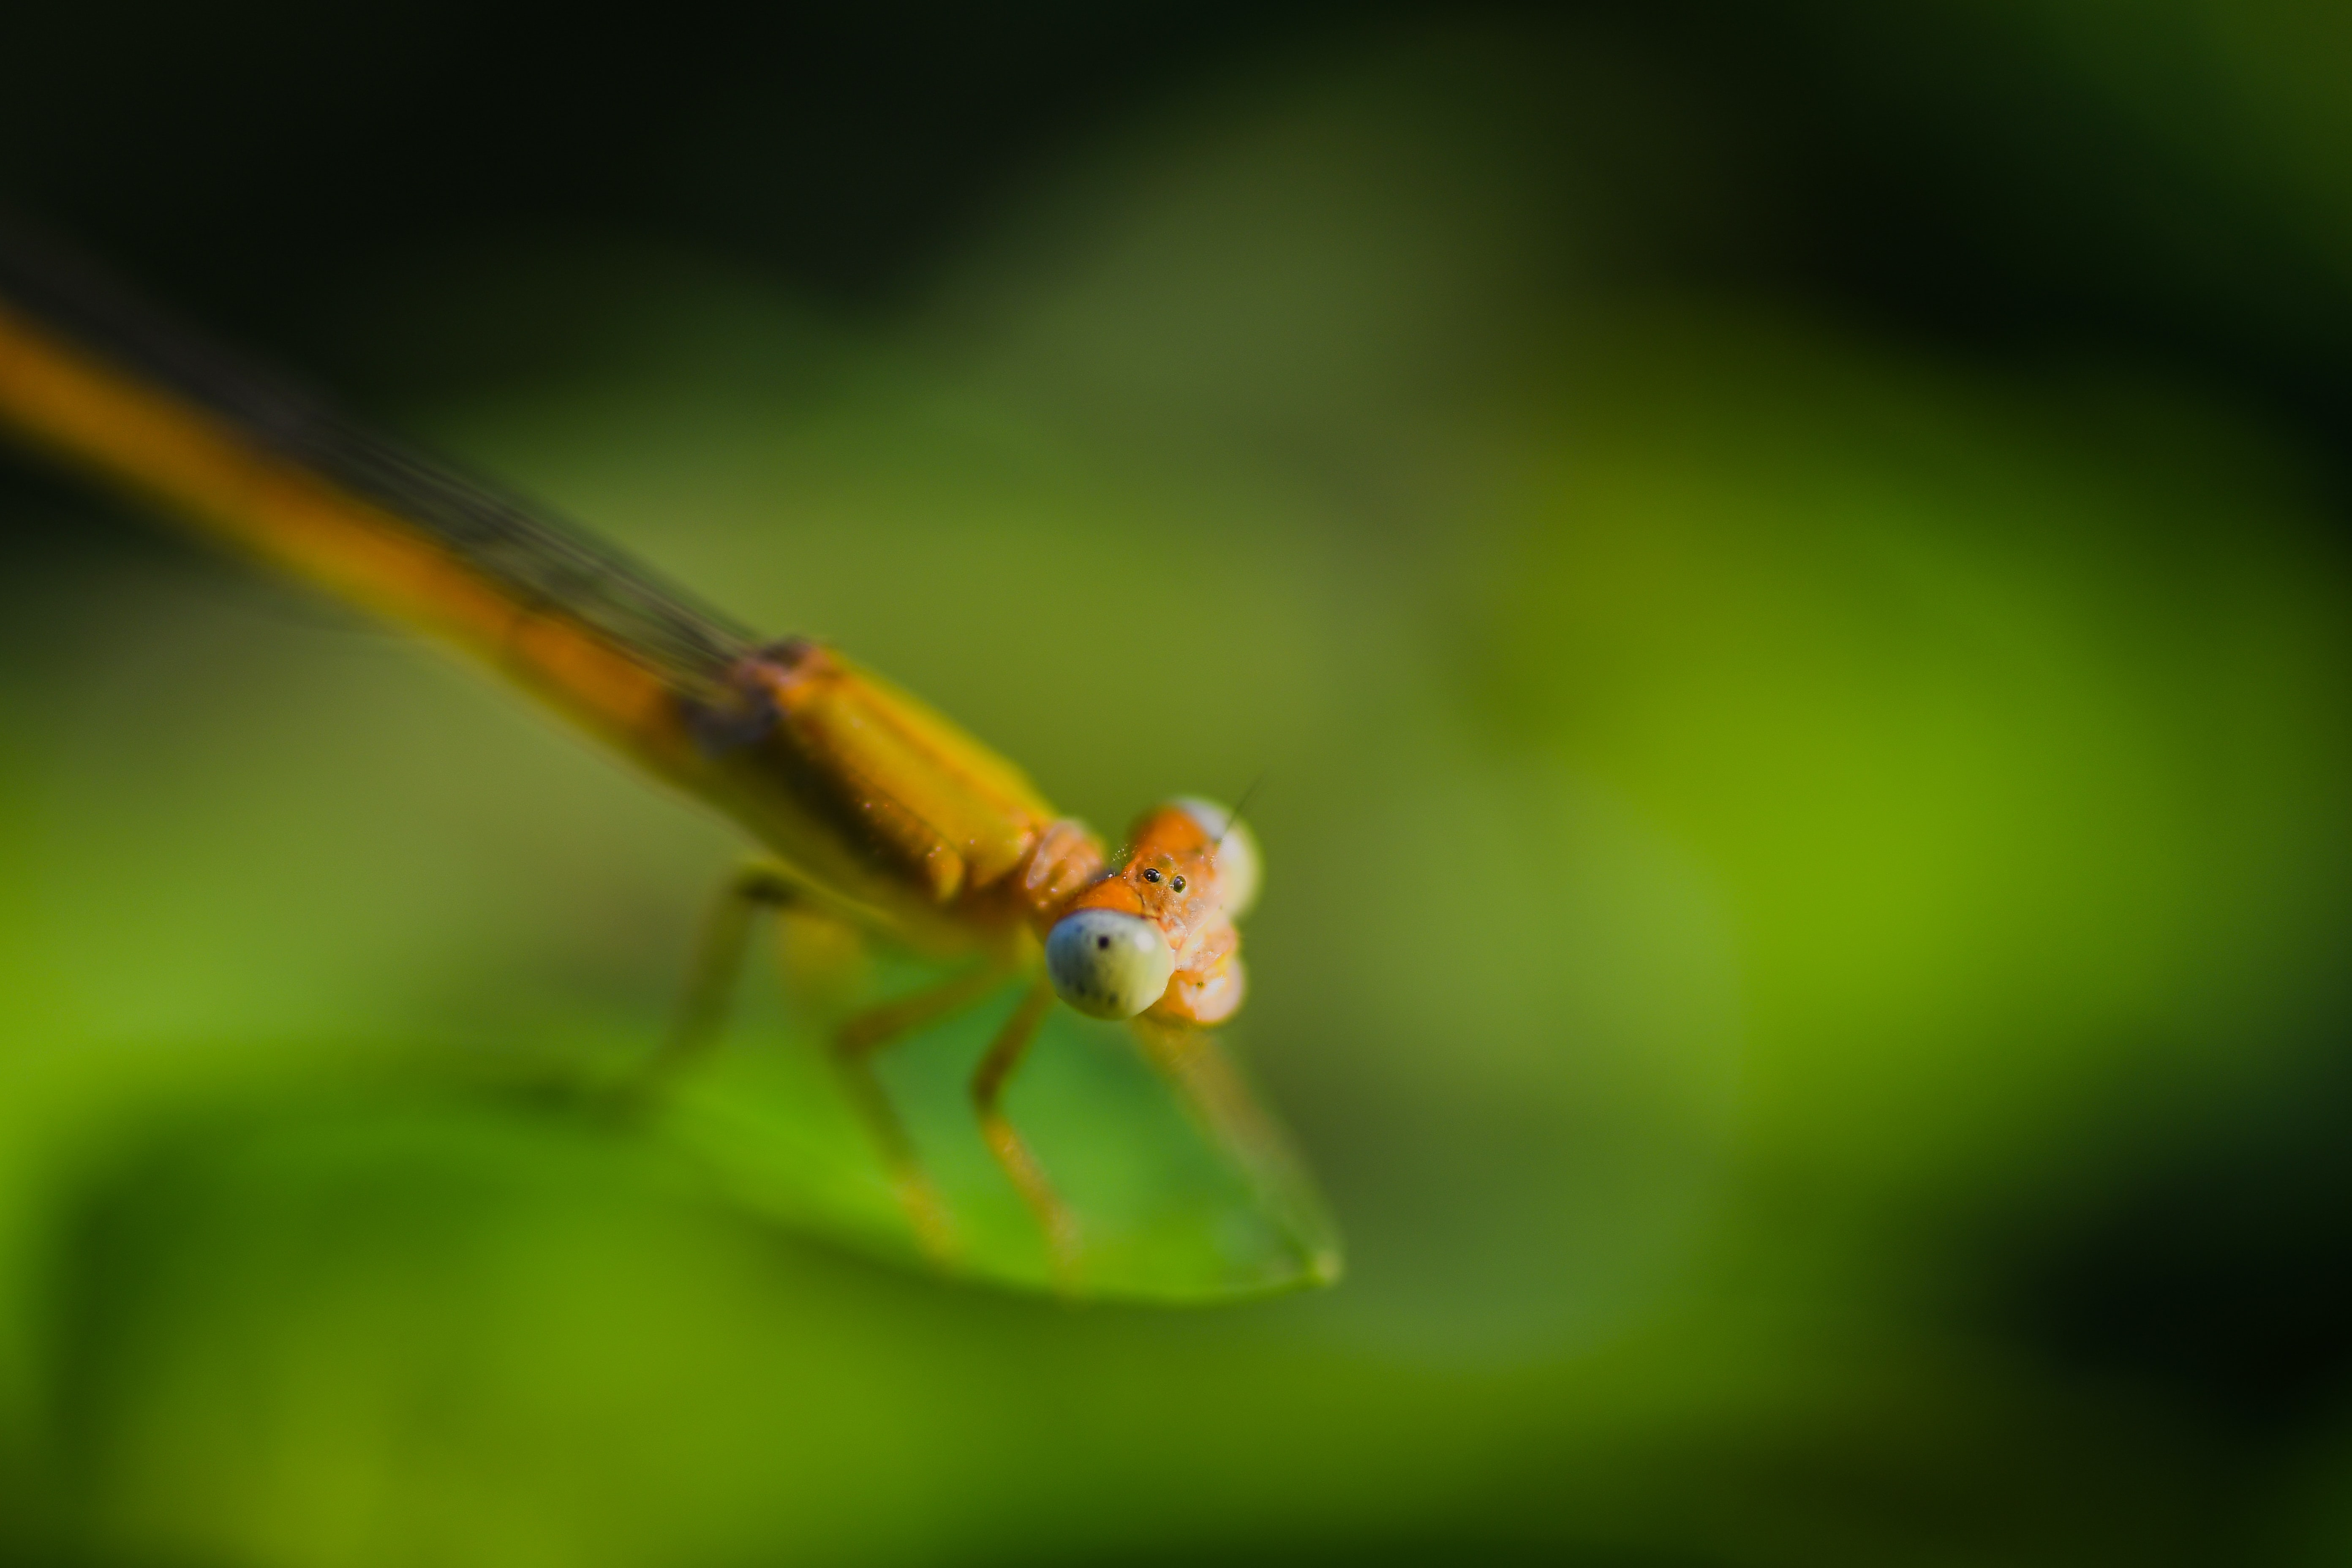 closeup photography of brown dragon fly on leaf